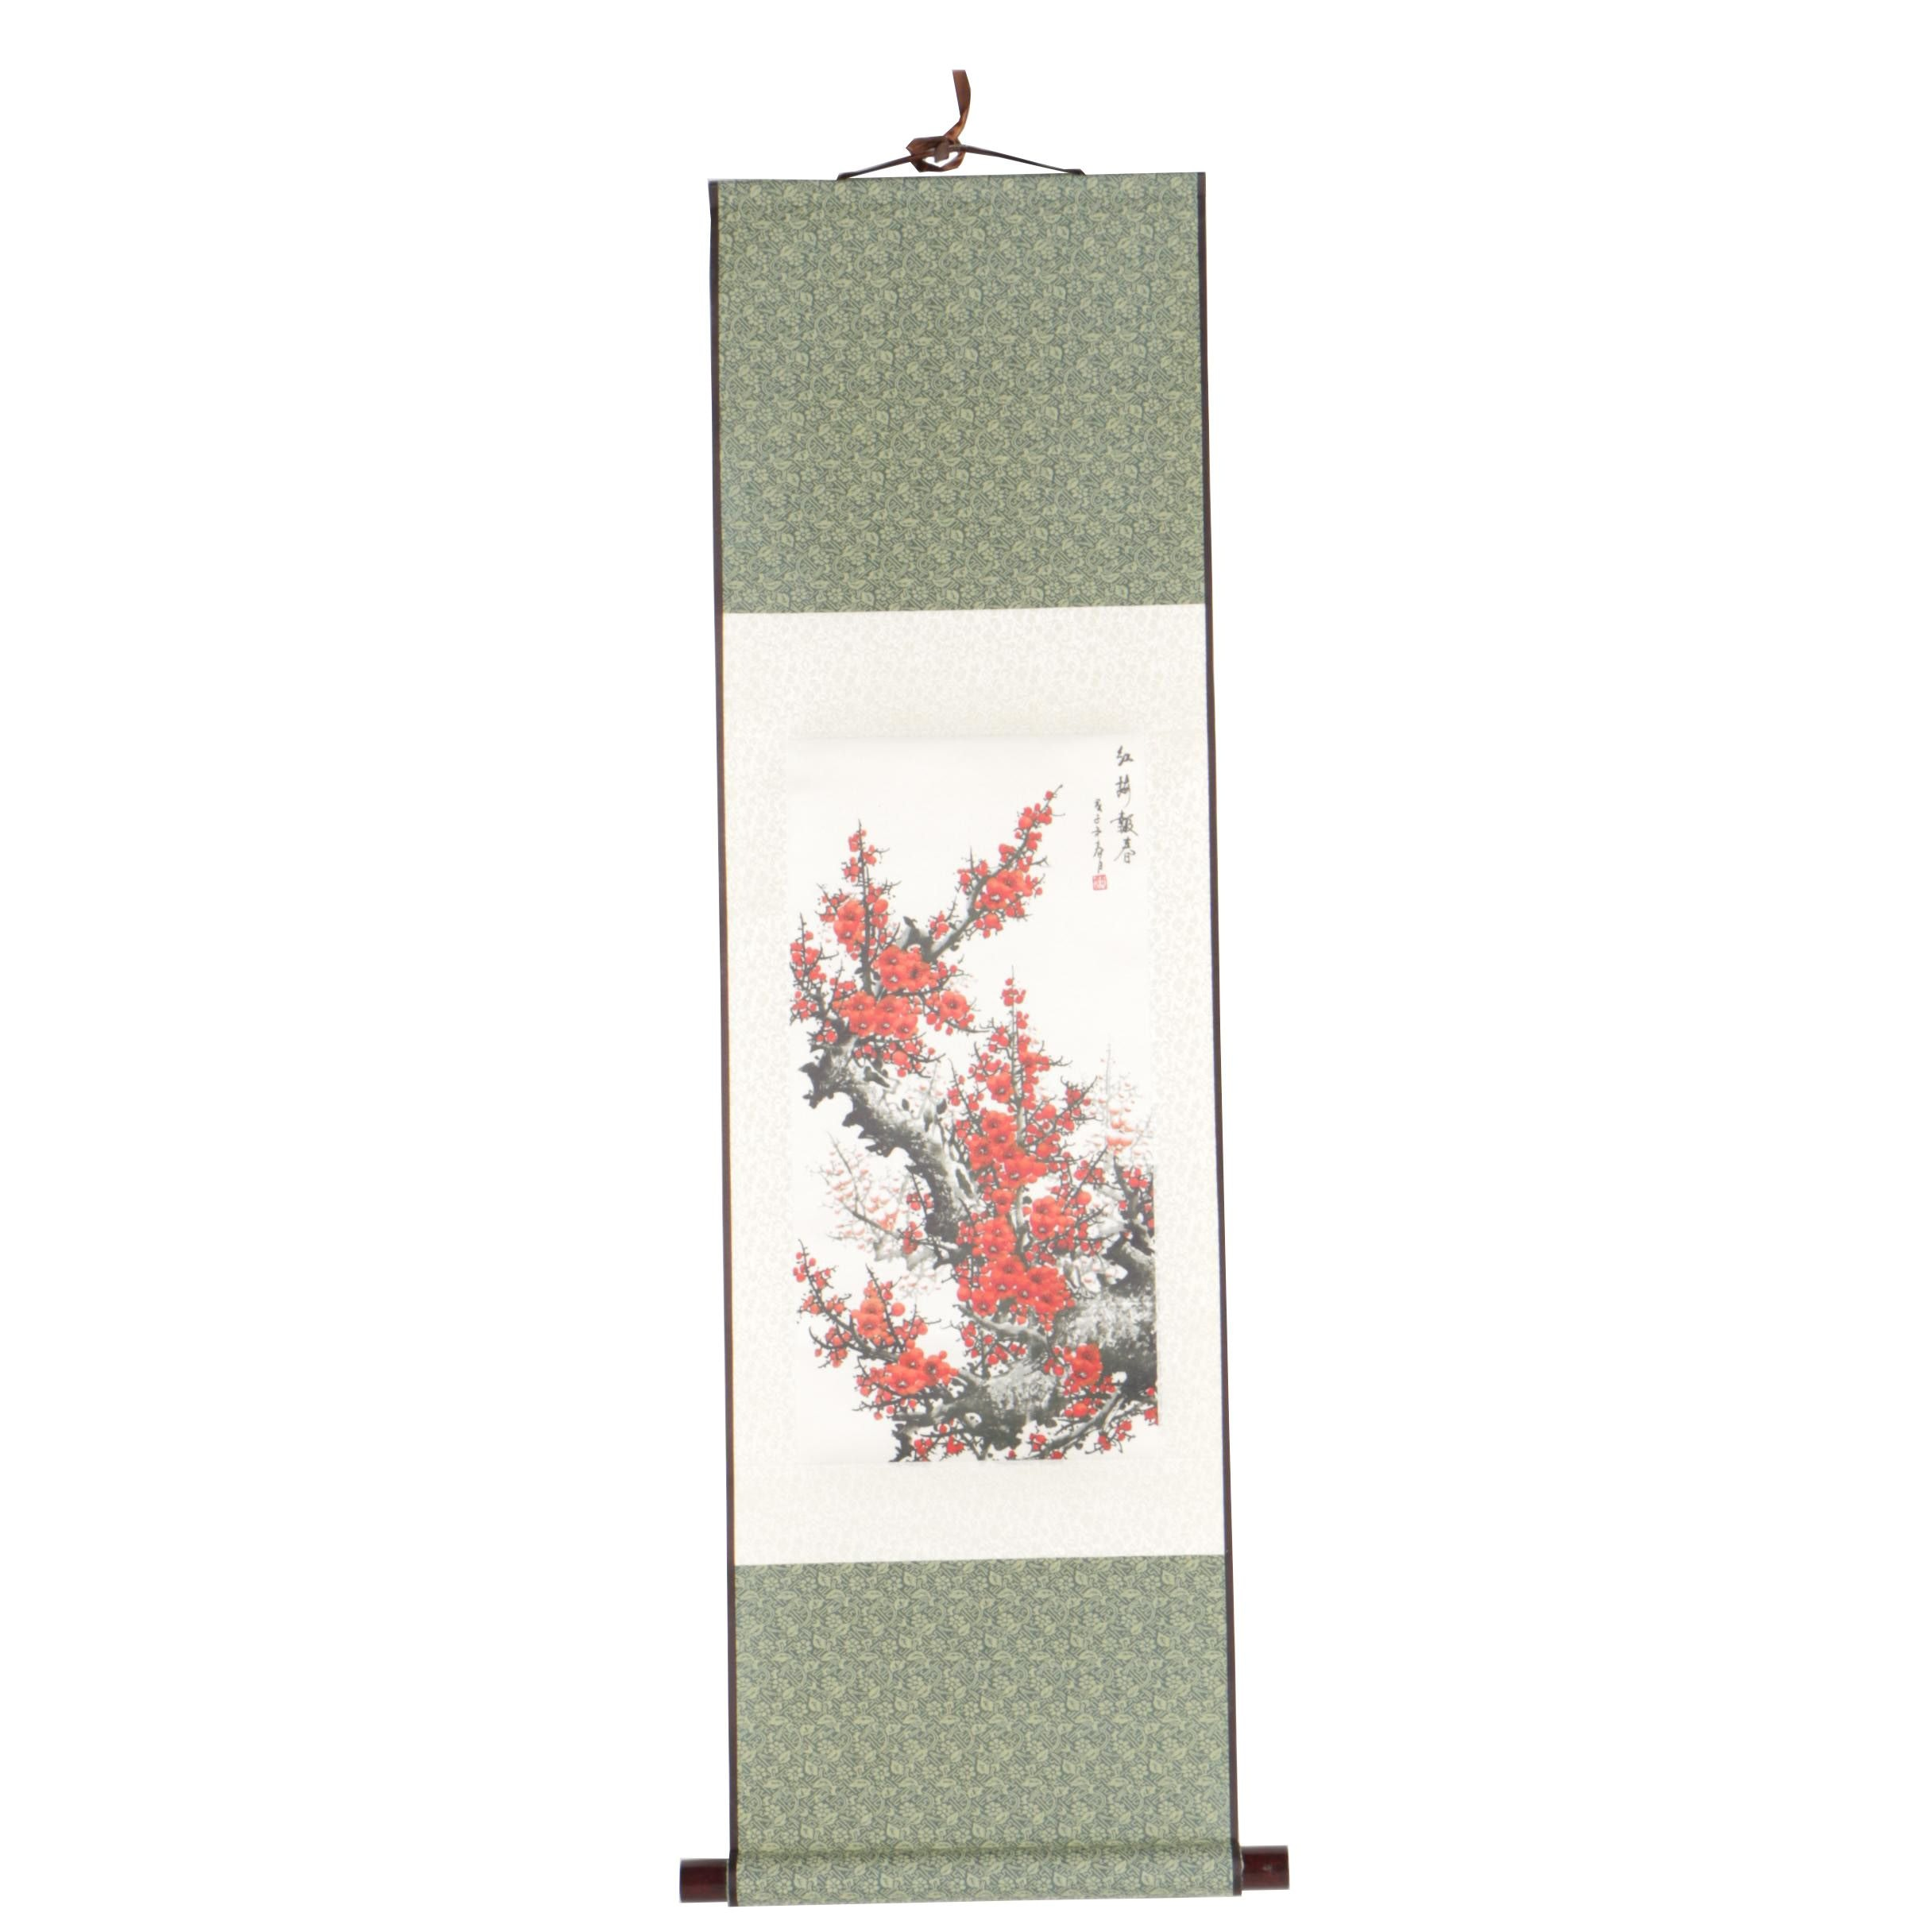 Chinese Giclée Print of Blossoms on Hanging Scroll